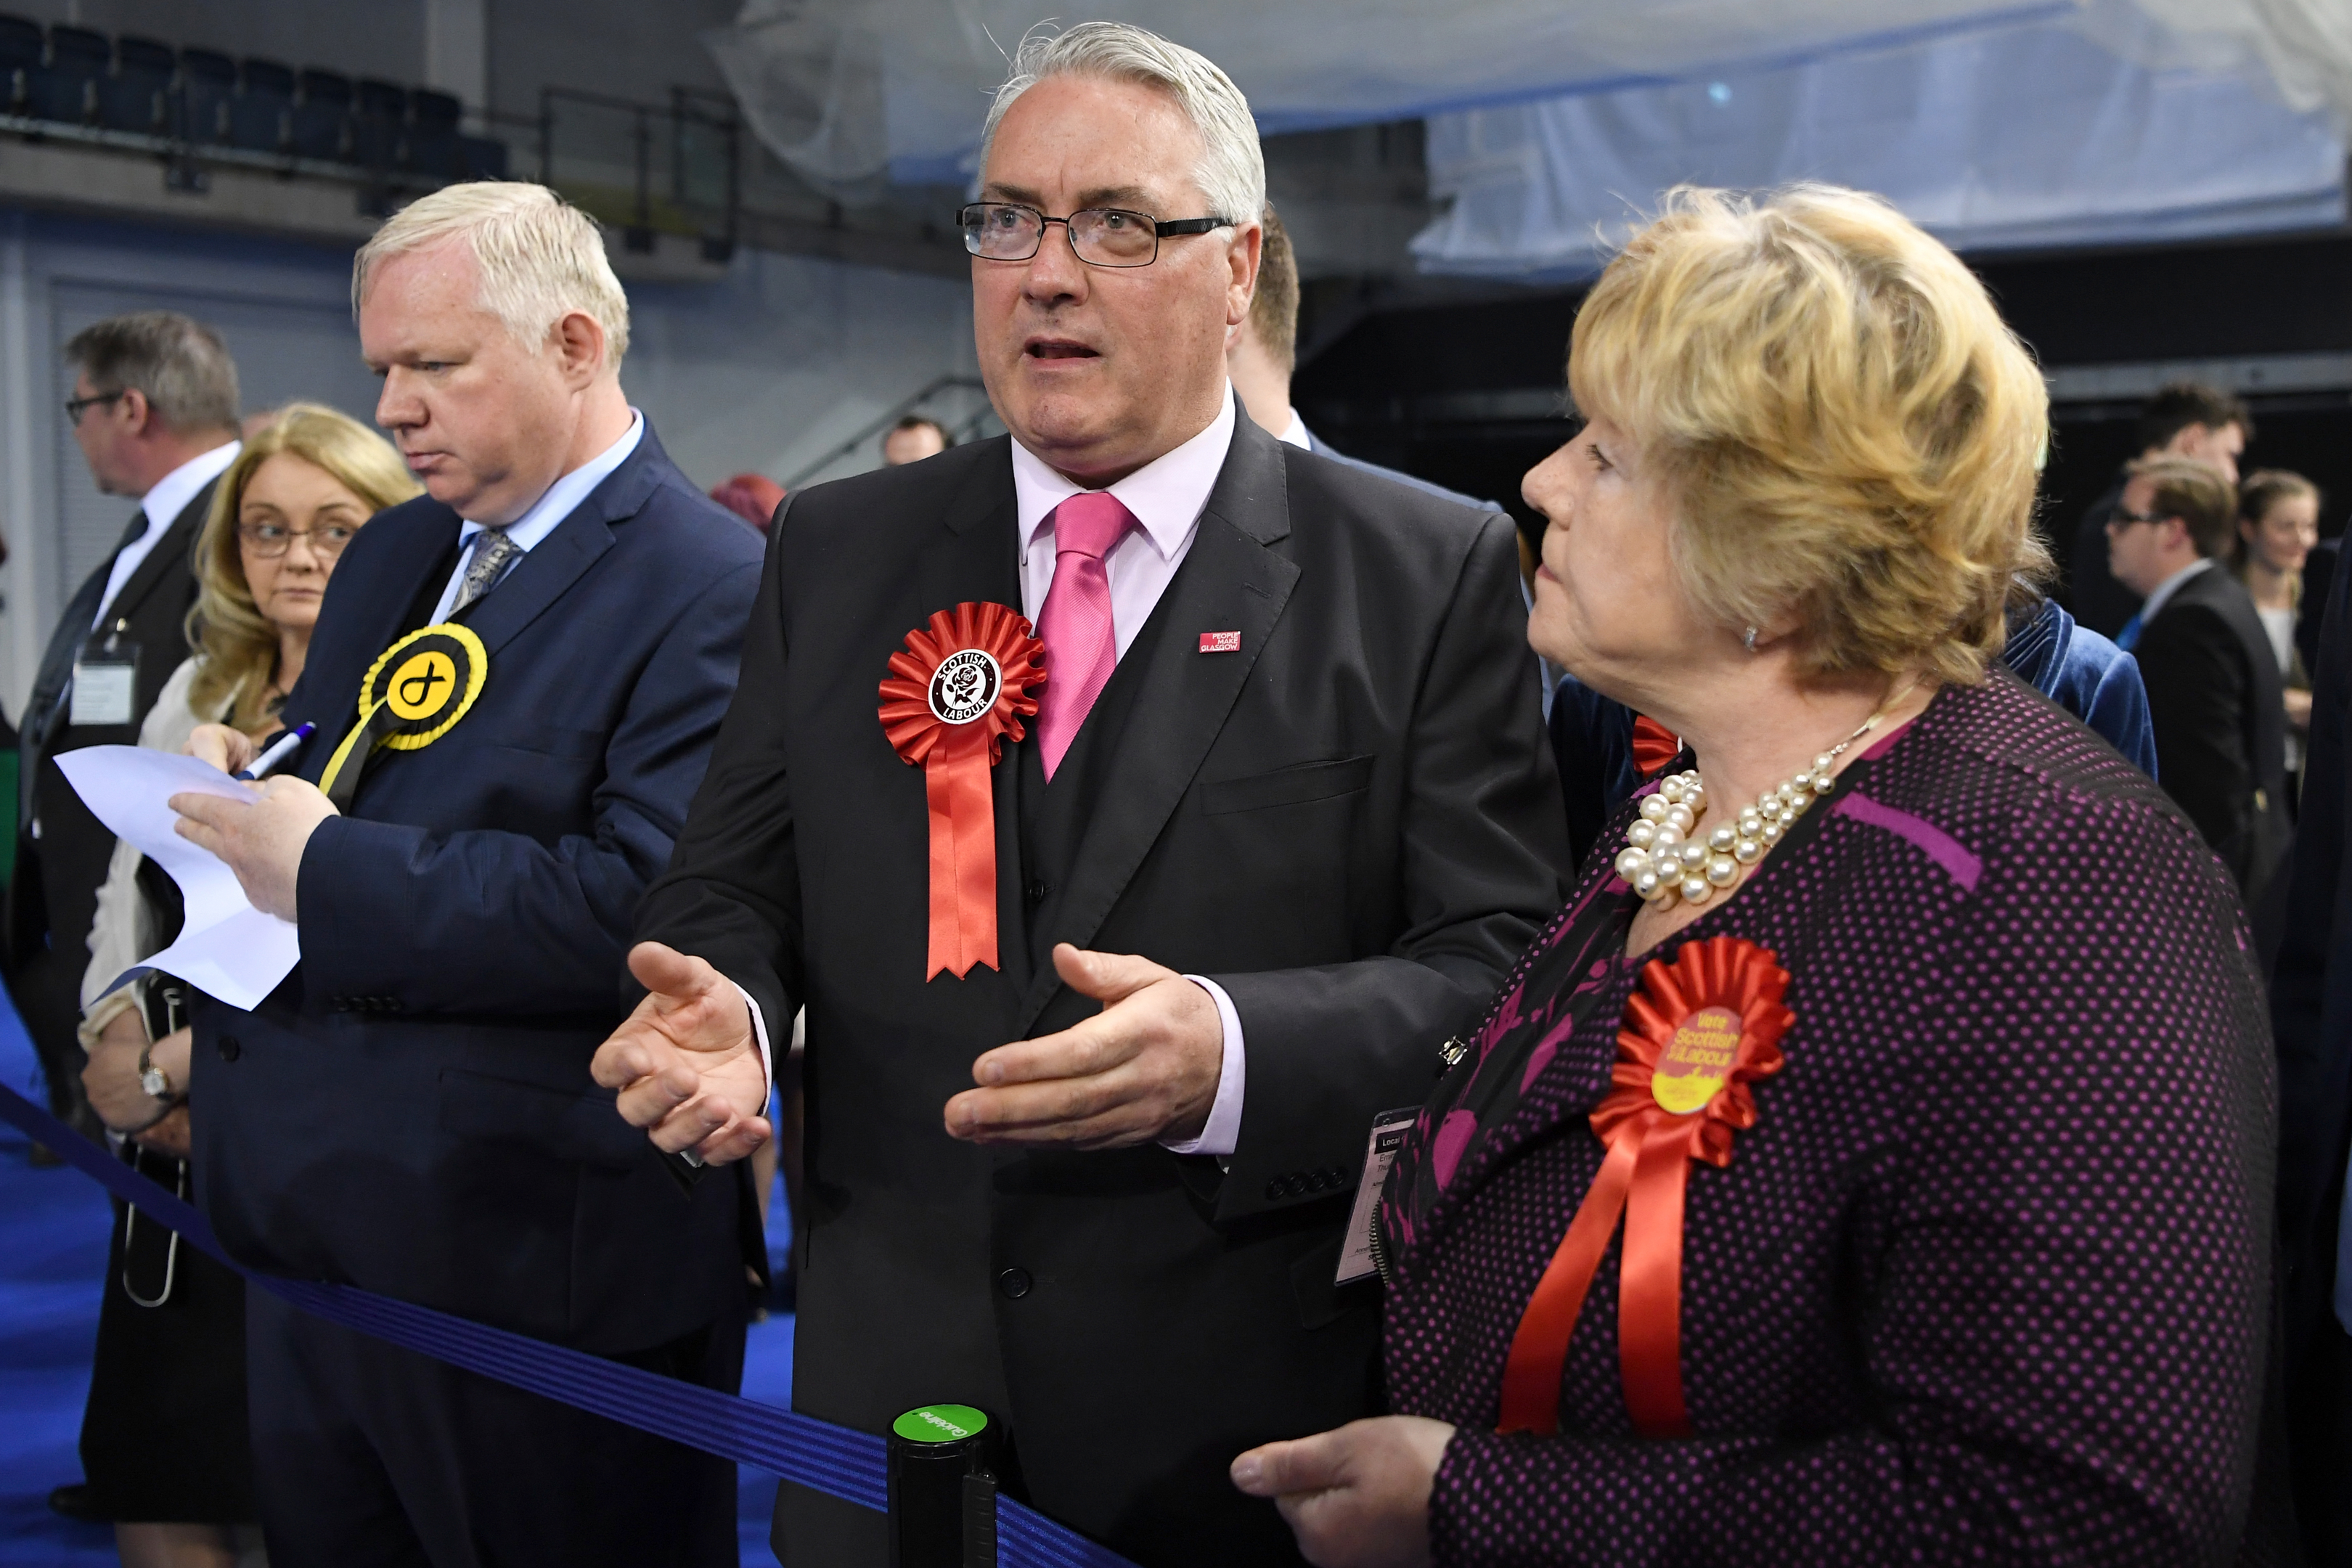 Labour Councillor Frank McAveety arrives at the count earlier today (Jeff J Mitchell/Getty Images)